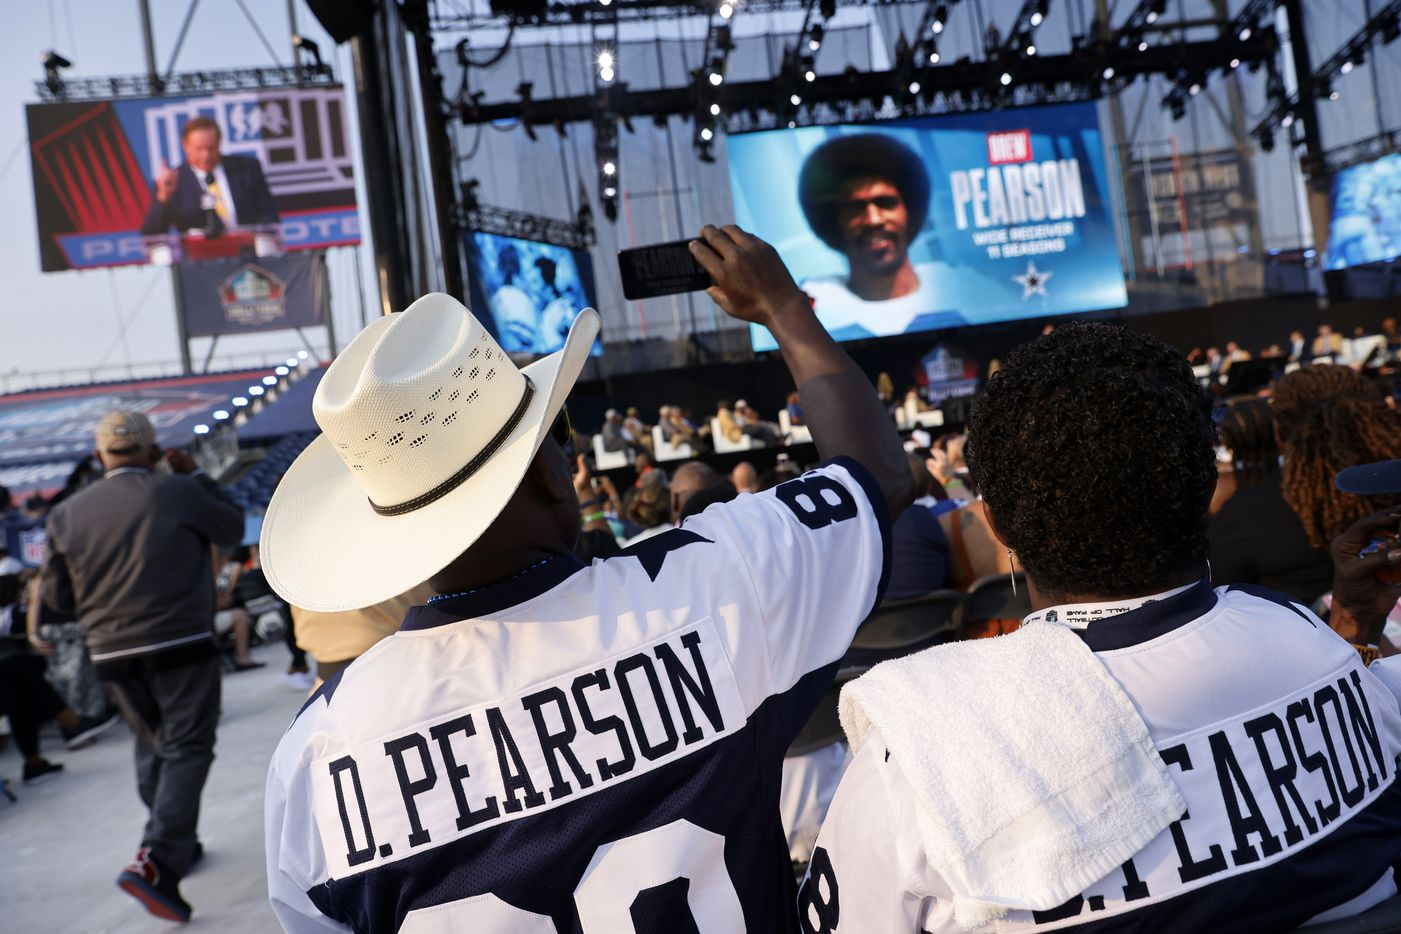 Mike Fisher takes a photo as Pro Football Hall of Fame inductee Drew Pearson of the Dallas Cowboys is introduced during the Class of 2021 enshrinement ceremony at Tom Benson Hall of Fame Stadium in Canton, Ohio, Sunday, August 8, 2021. (Tom Fox/The Dallas Morning News)